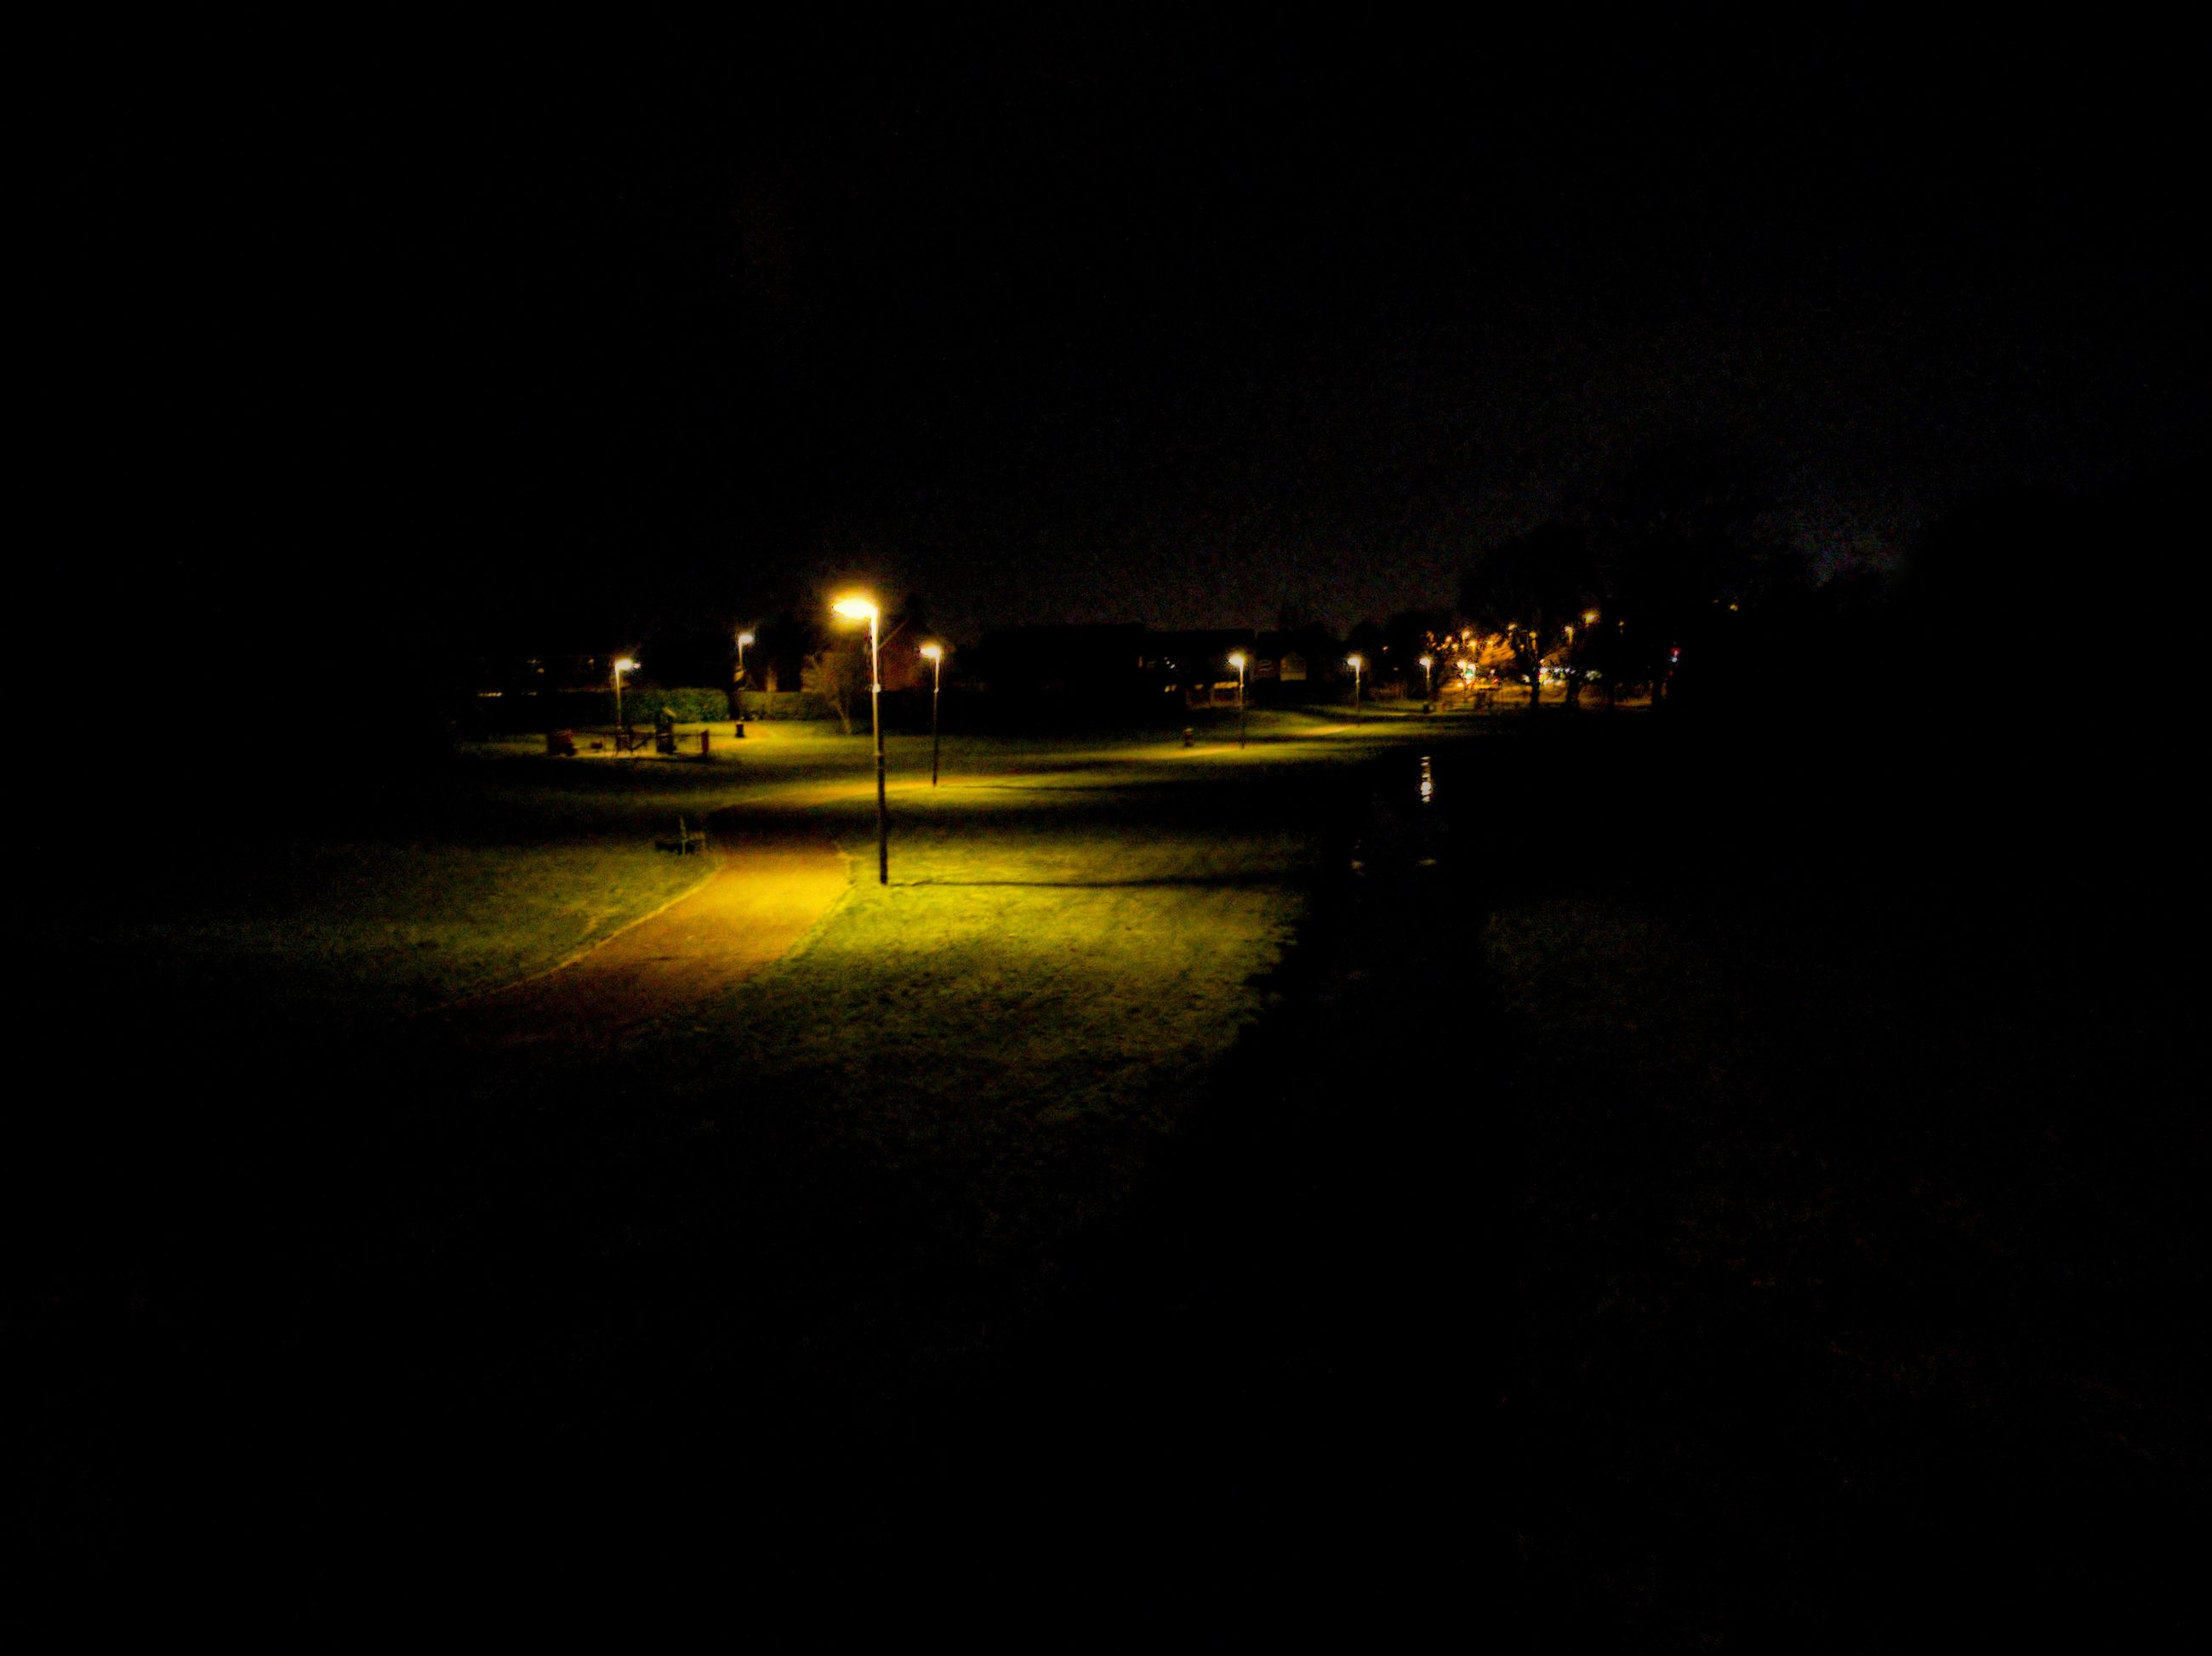 illuminated, night, copy space, no people, lighting equipment, sky, nature, dark, architecture, outdoors, built structure, building exterior, street light, street, grass, transportation, field, tranquility, city, building